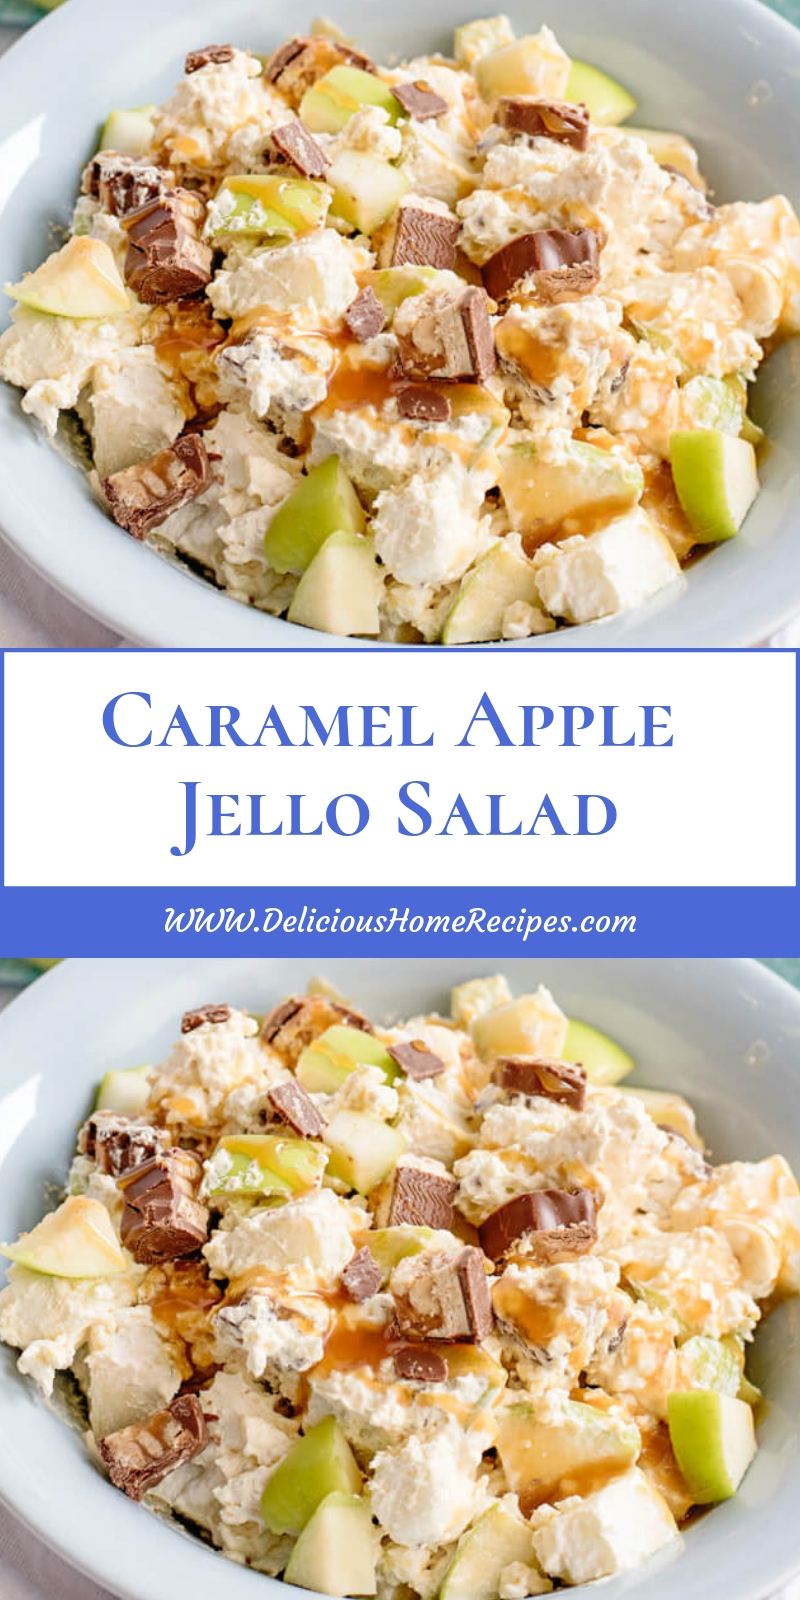 Caramel Apple Jello Salad